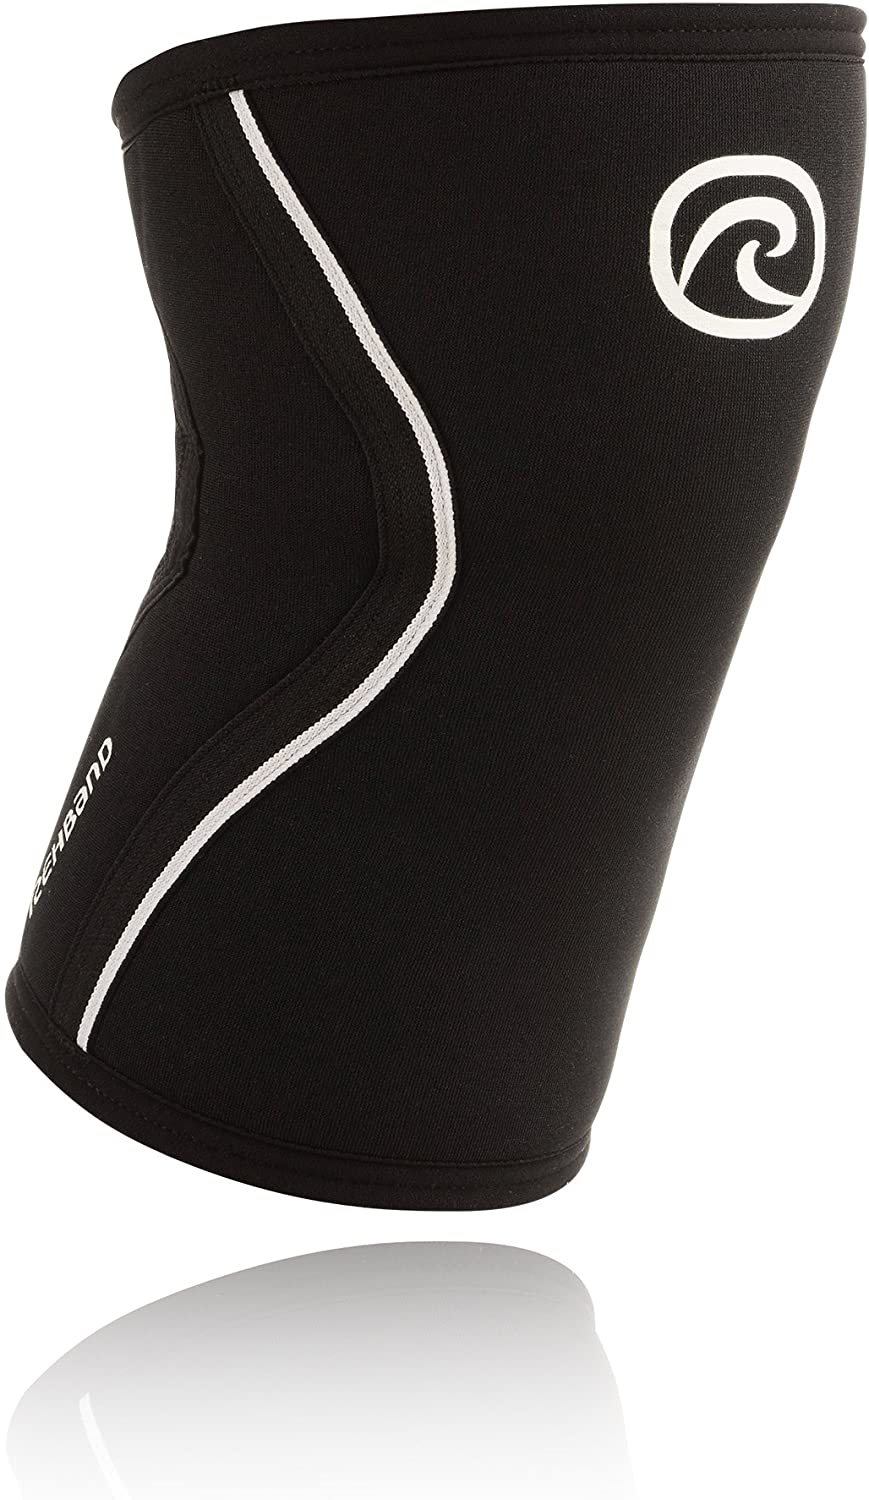 Rehband Rx Knee Support 5mm - Medium - Black- Expand Your Movement + Cross Training Potential - Knee Sleeve for Fitness - Feel Stronger + More Secure - Relieve Strain - 1 Sleeve